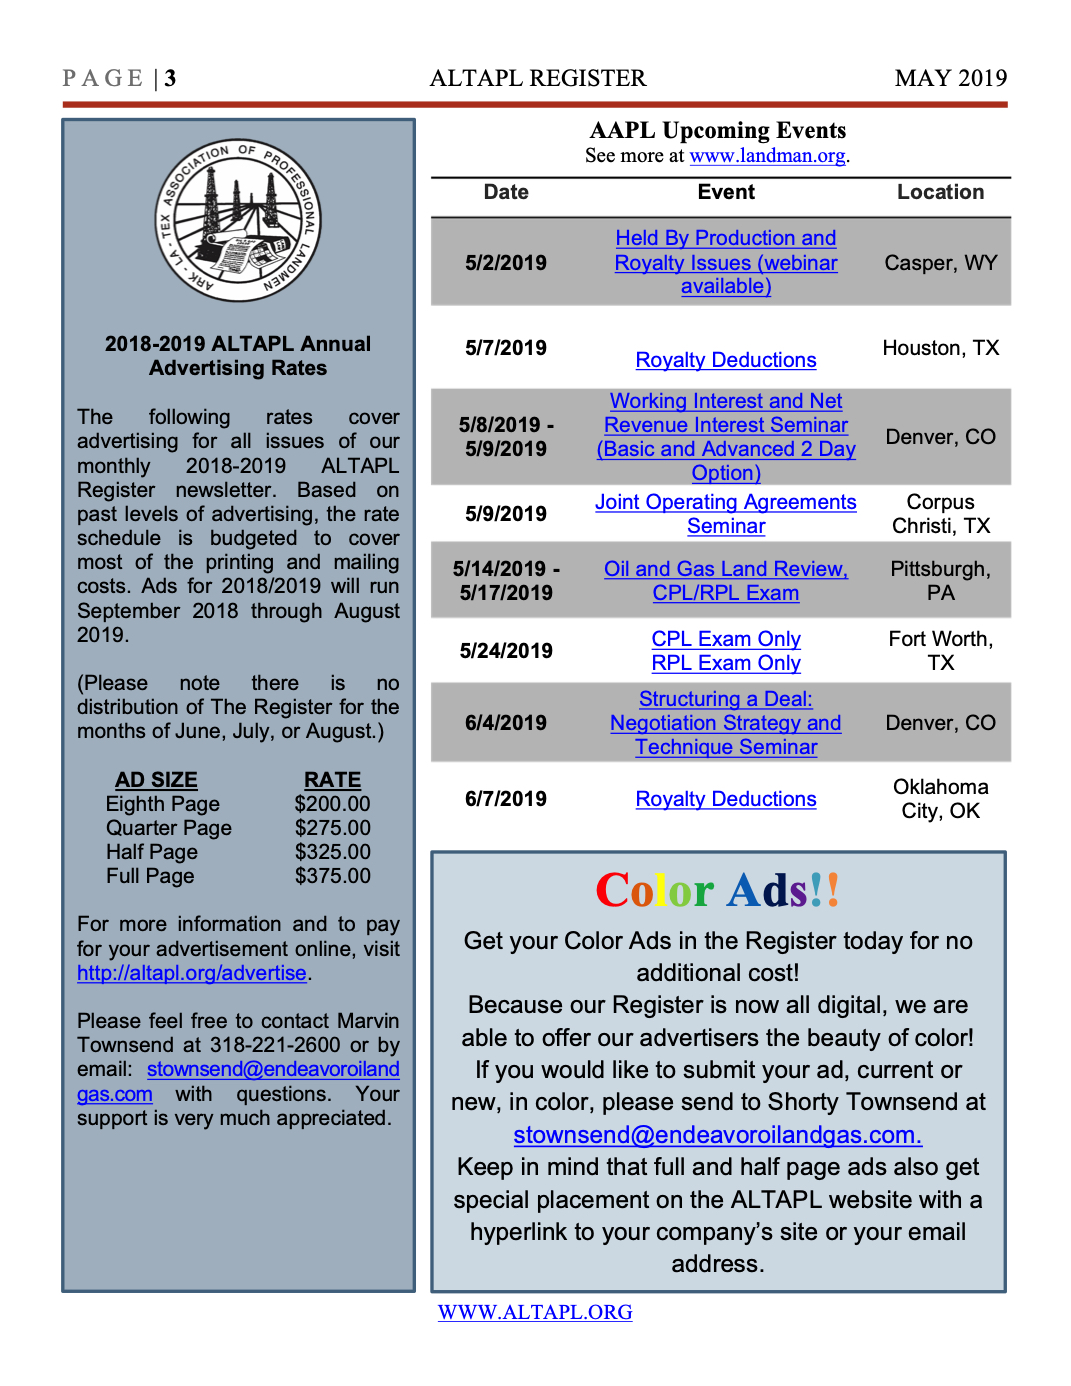 ALTAPL Register May 2019 Page 3.jpg